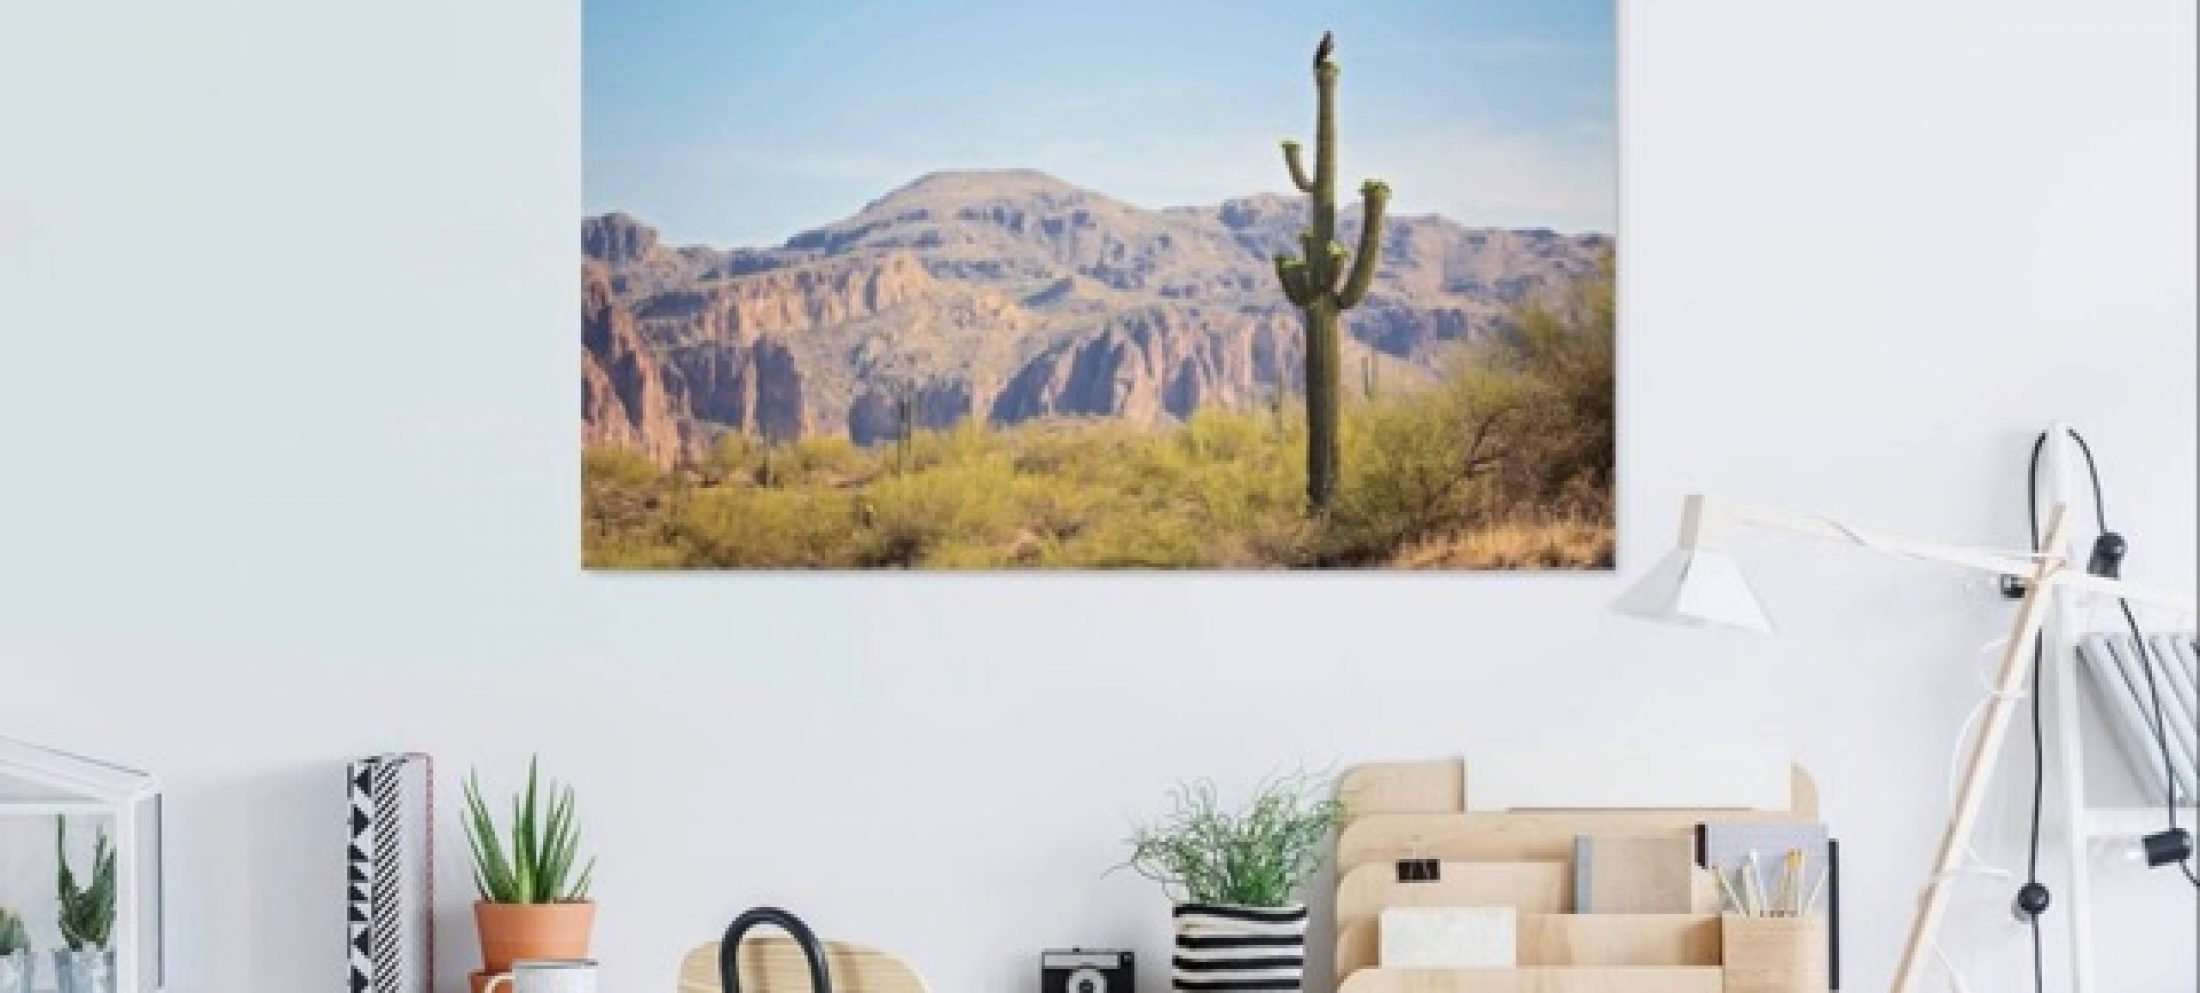 Discover the Saguaro Collection